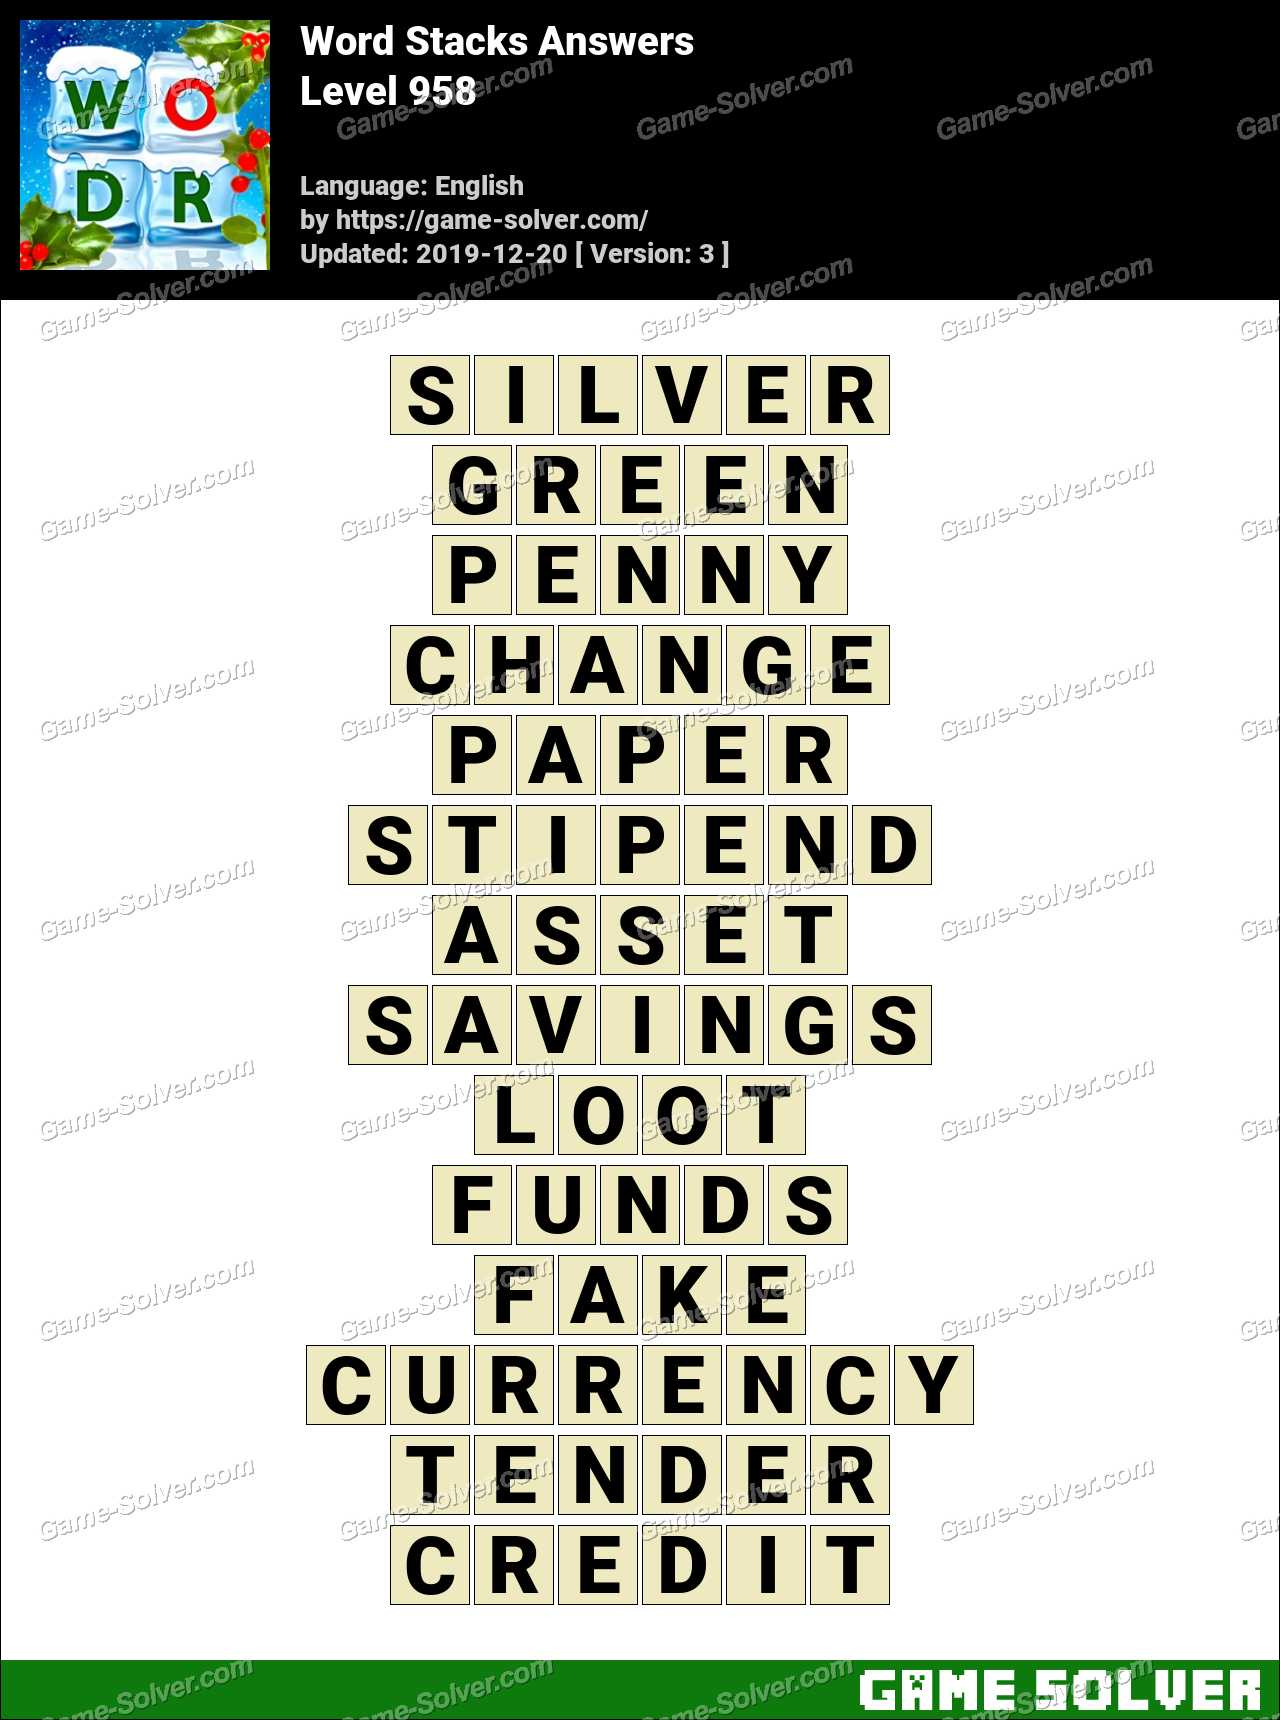 Word Stacks Level 958 Answers